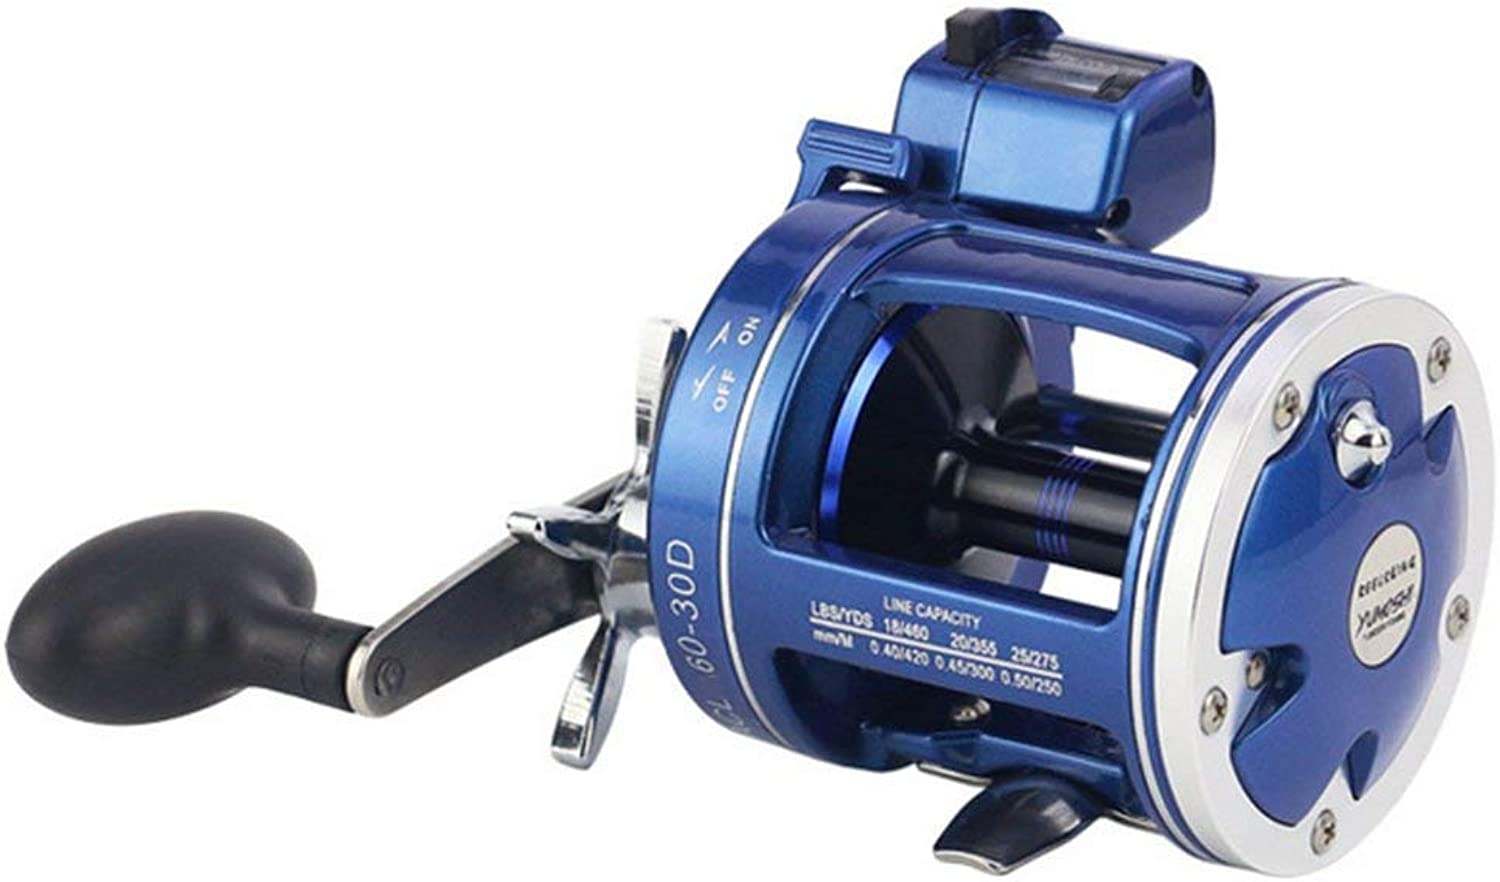 BaynneCAa2 Flame Spinning Reels Light Weight Ultra Smooth Powerful Spinning Fishing Reels